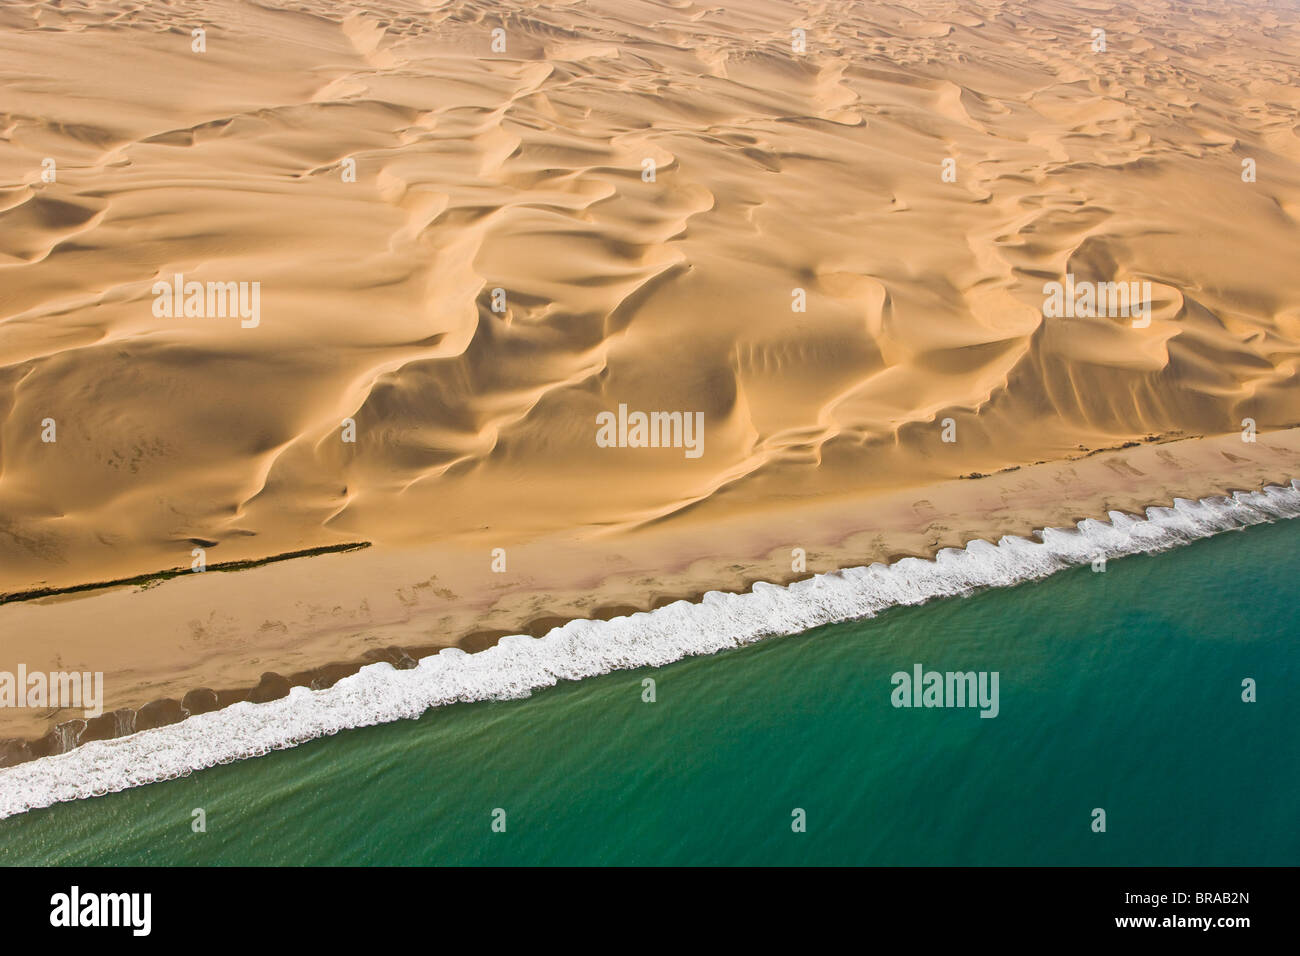 Aerial view of sand dunes and the atlantic coast, near Swakopmund, Namib desert, Namibia, August 2008 Stock Photo